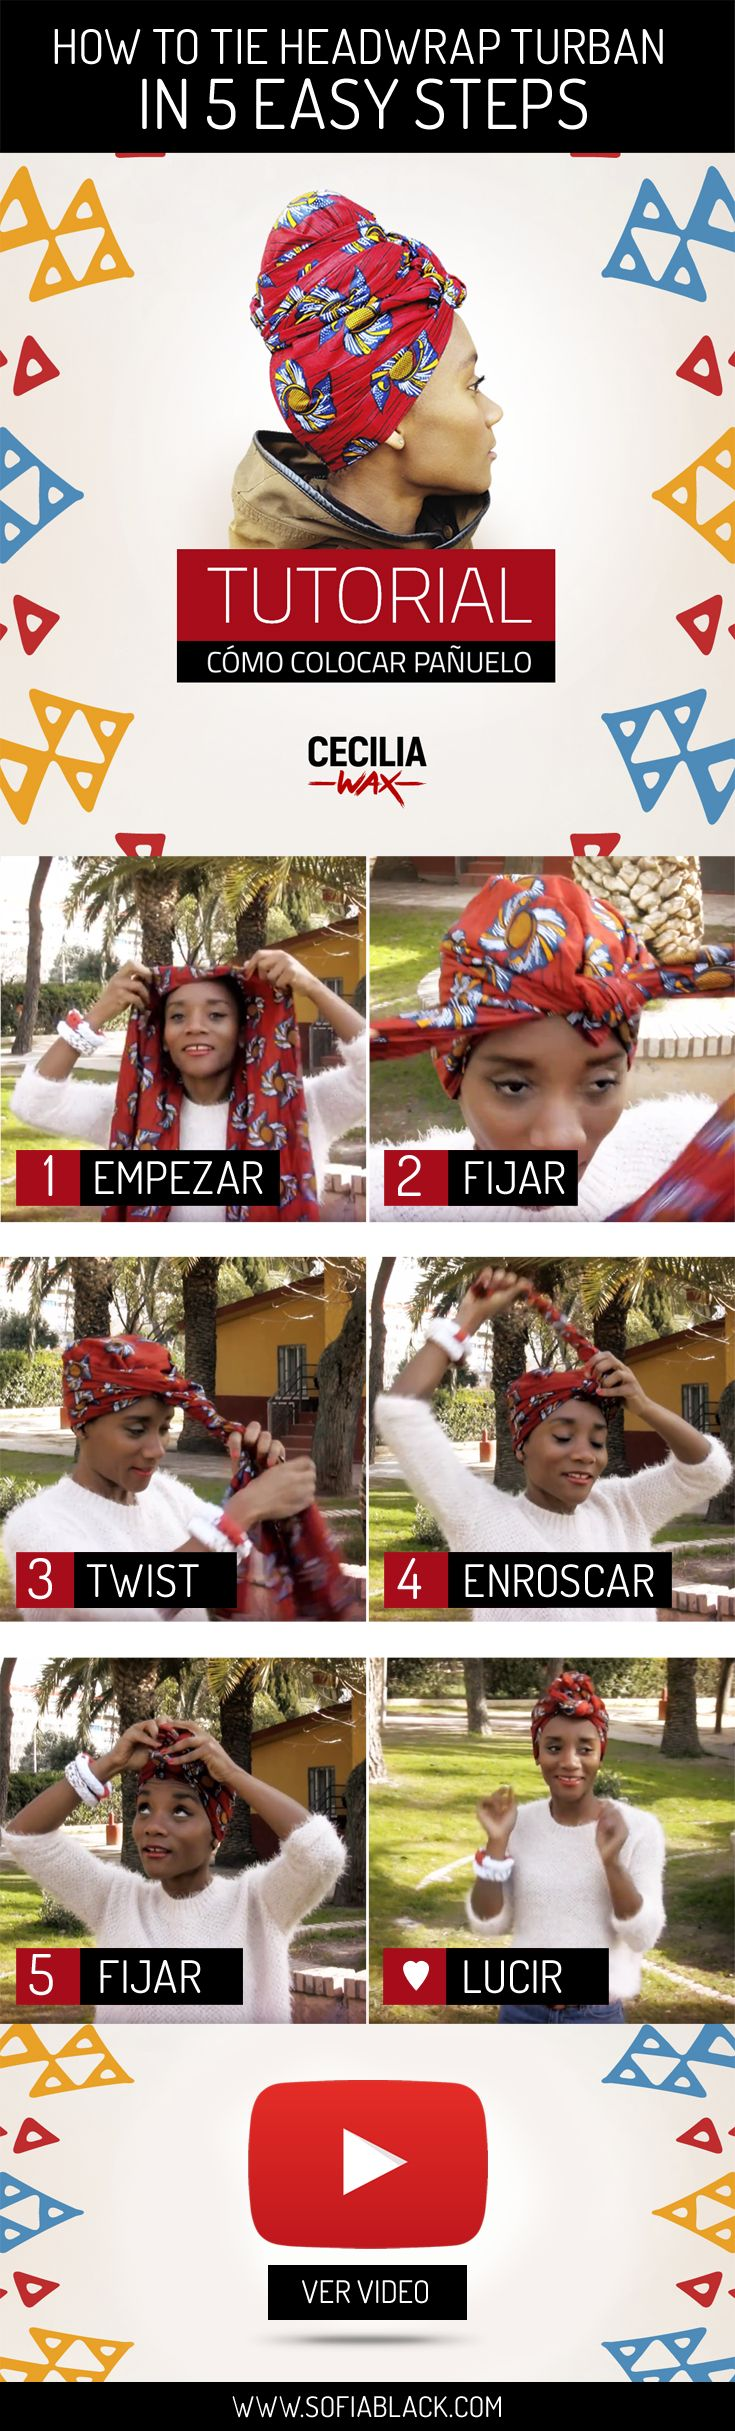 Cómo colocar pañuelos de manera rápida y fácil. / How to tie headwrap turban in 5 easy steps. ~ Usa turbante, paño o pañoleta como tocado para adornar la cabeza. Protege el cabello del frío, viento o calor extremos. Evita la rotura del pelo. Diseño étnico africano. / Accesorios by Cecilia Wax disponibles en www.SofiaBlack.com